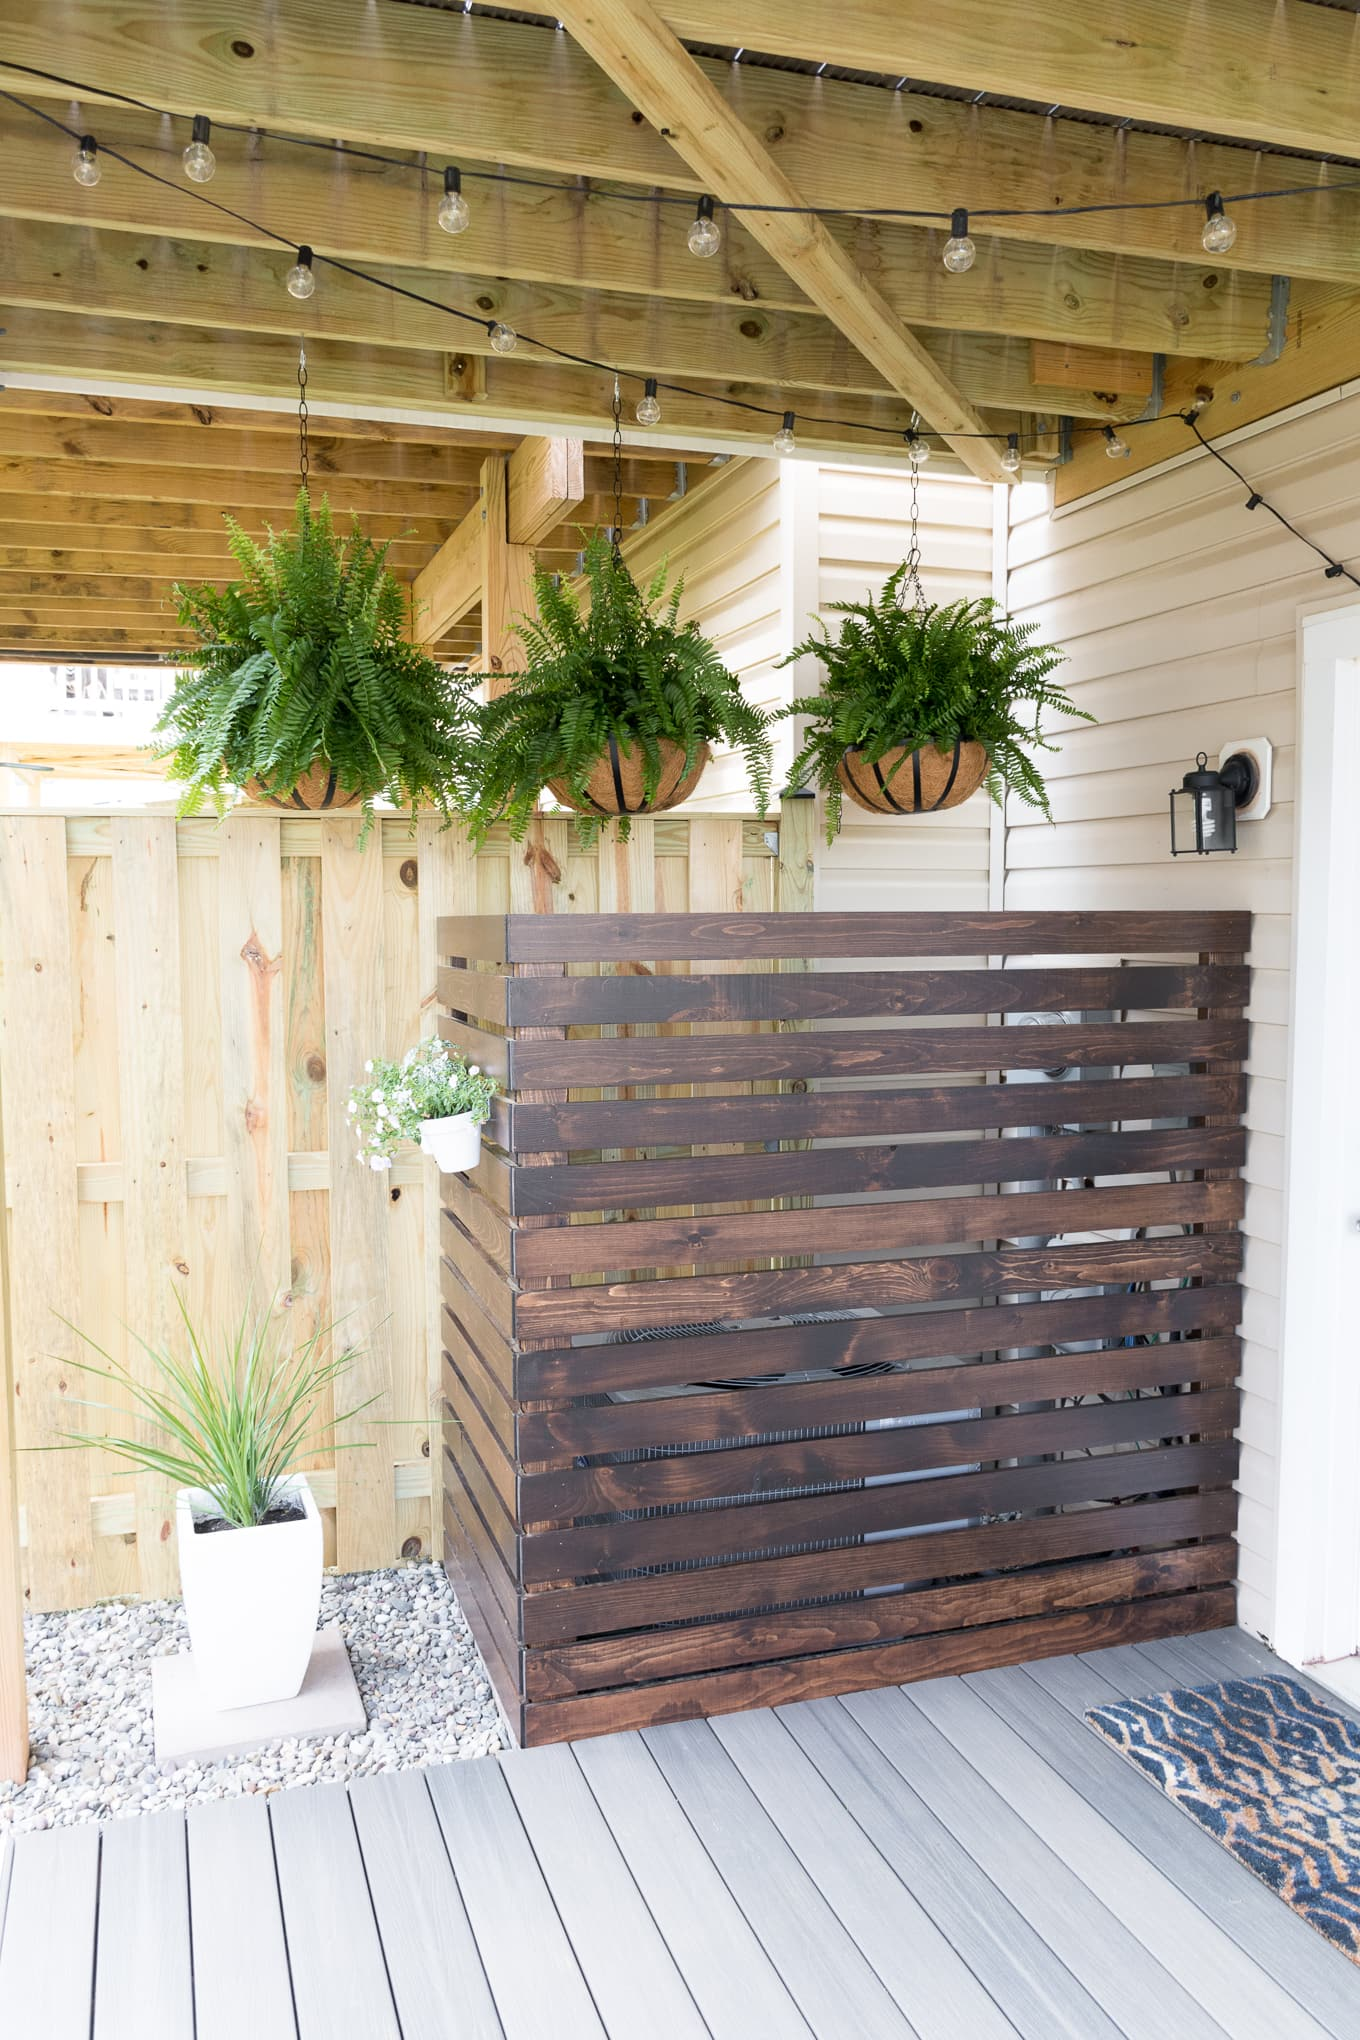 Modern design ideas for a small backyard // My Tiny Backyard // by Brittany Goldwyn #buildplans #diy #kregtool #pocketholes #woodworking